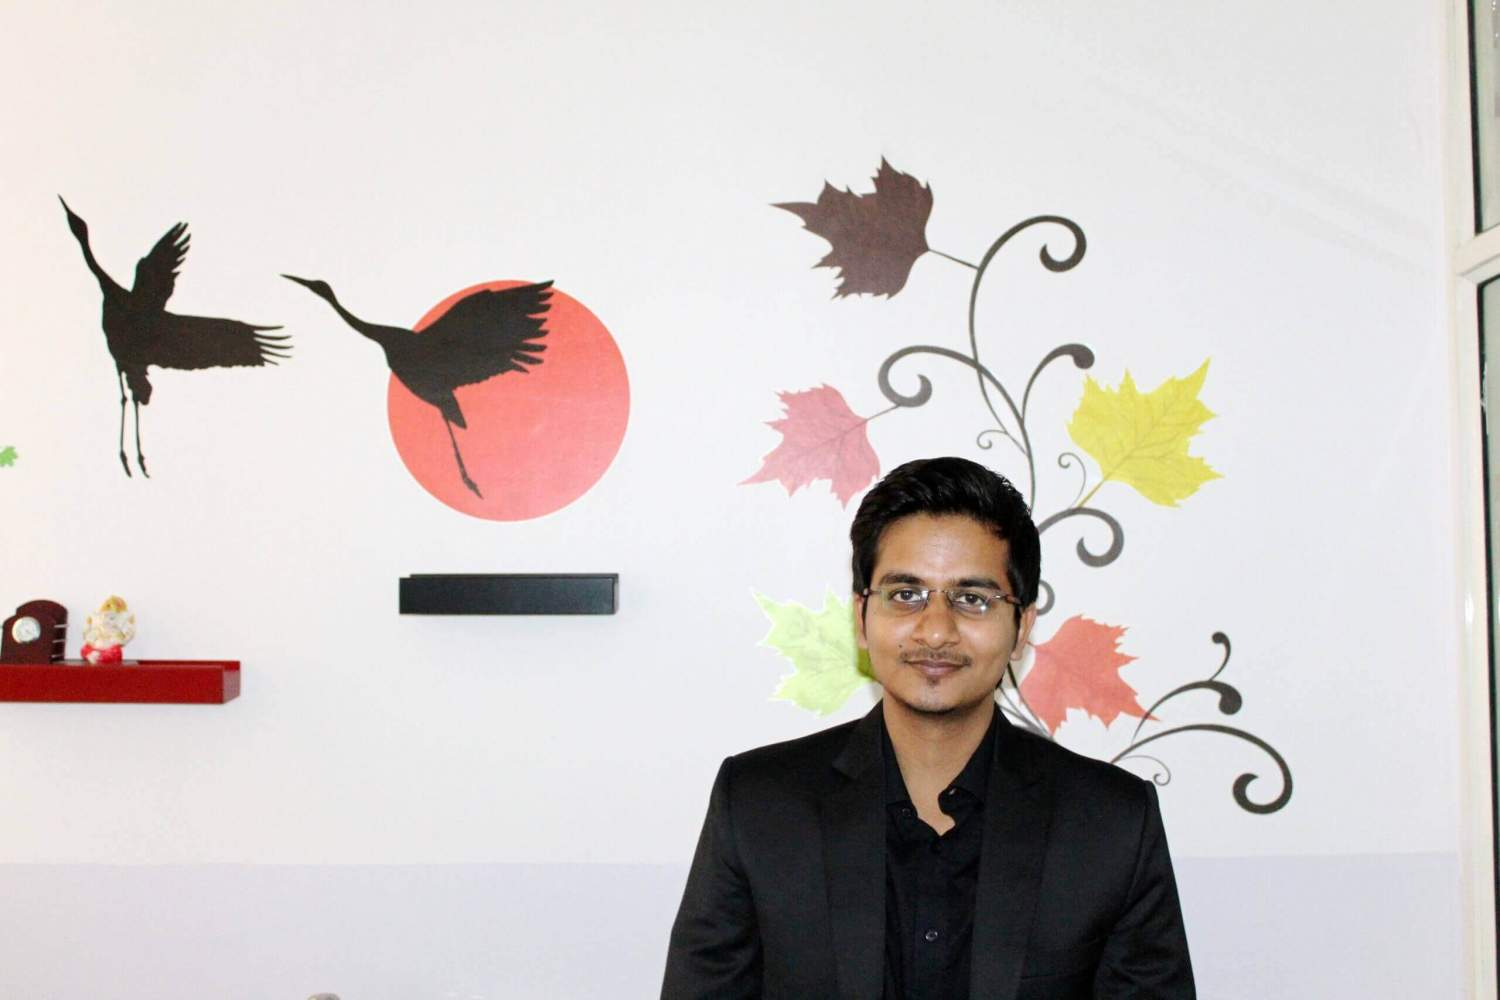 A Day In The Life Of… Indrajeet Agrawal, Head Of Business Development & Consultancy At Propel Guru